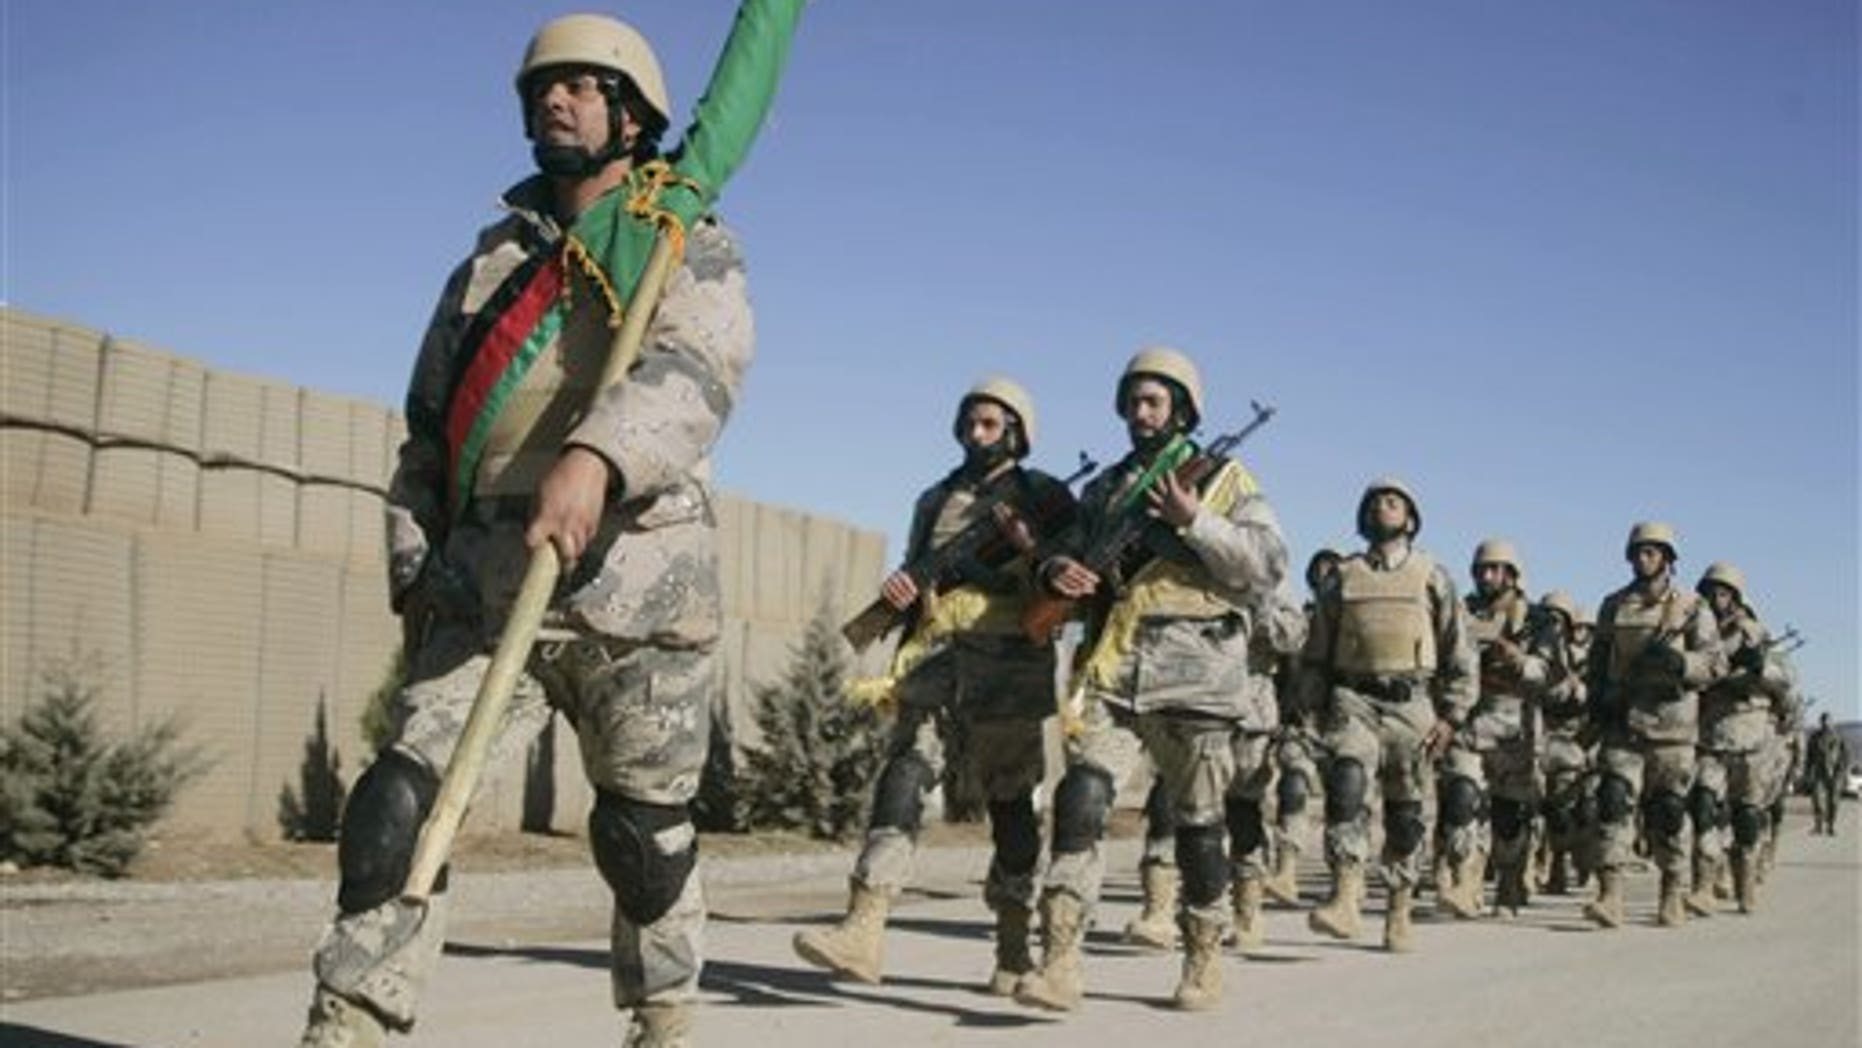 Jan. 16: Afghan border policemen march to attend at the ceremony of transfer of authority from the NATO led International Security Assistance Force troops to Afghan security forces in Guzara, Herat province, west of Kabul, Afghanistan.